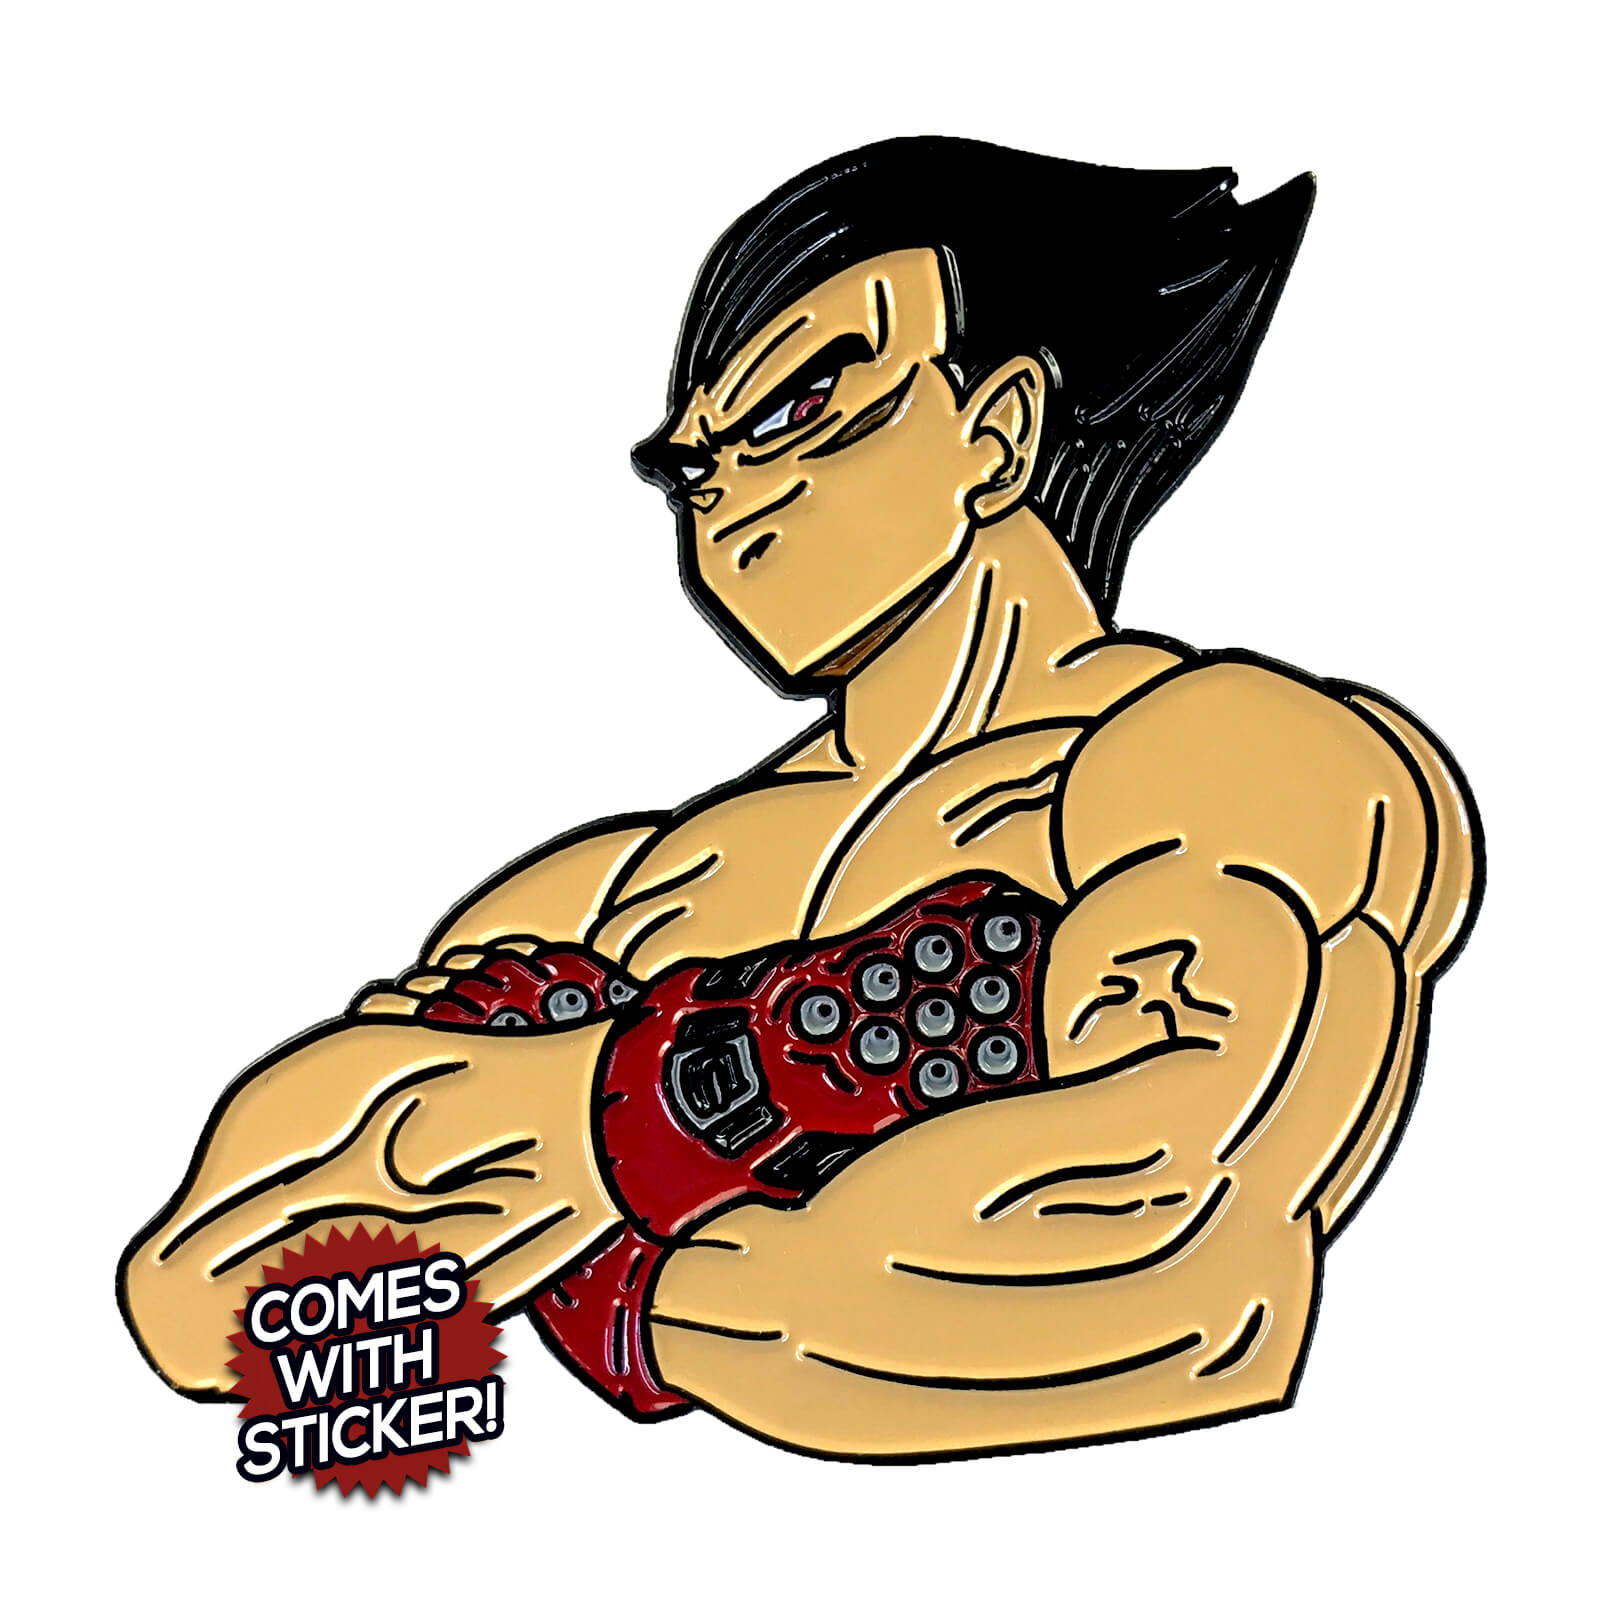 Kazugeta (Tekken x Dragon Ball) Enamel Pin